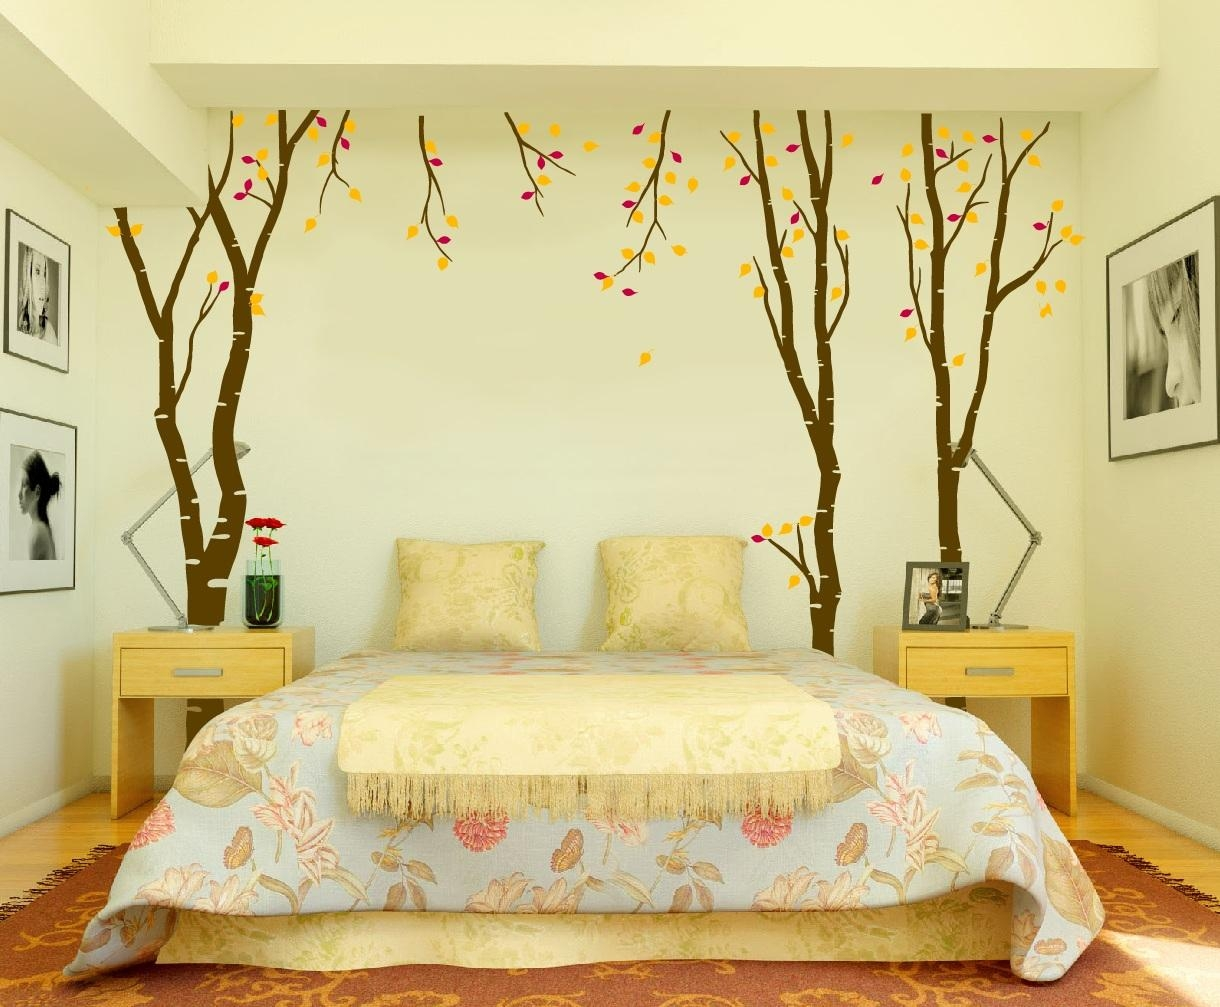 Wall Art Decals For Bedroom (Photos And Video) | Wylielauderhouse Throughout Bedroom Wall Art (View 13 of 20)